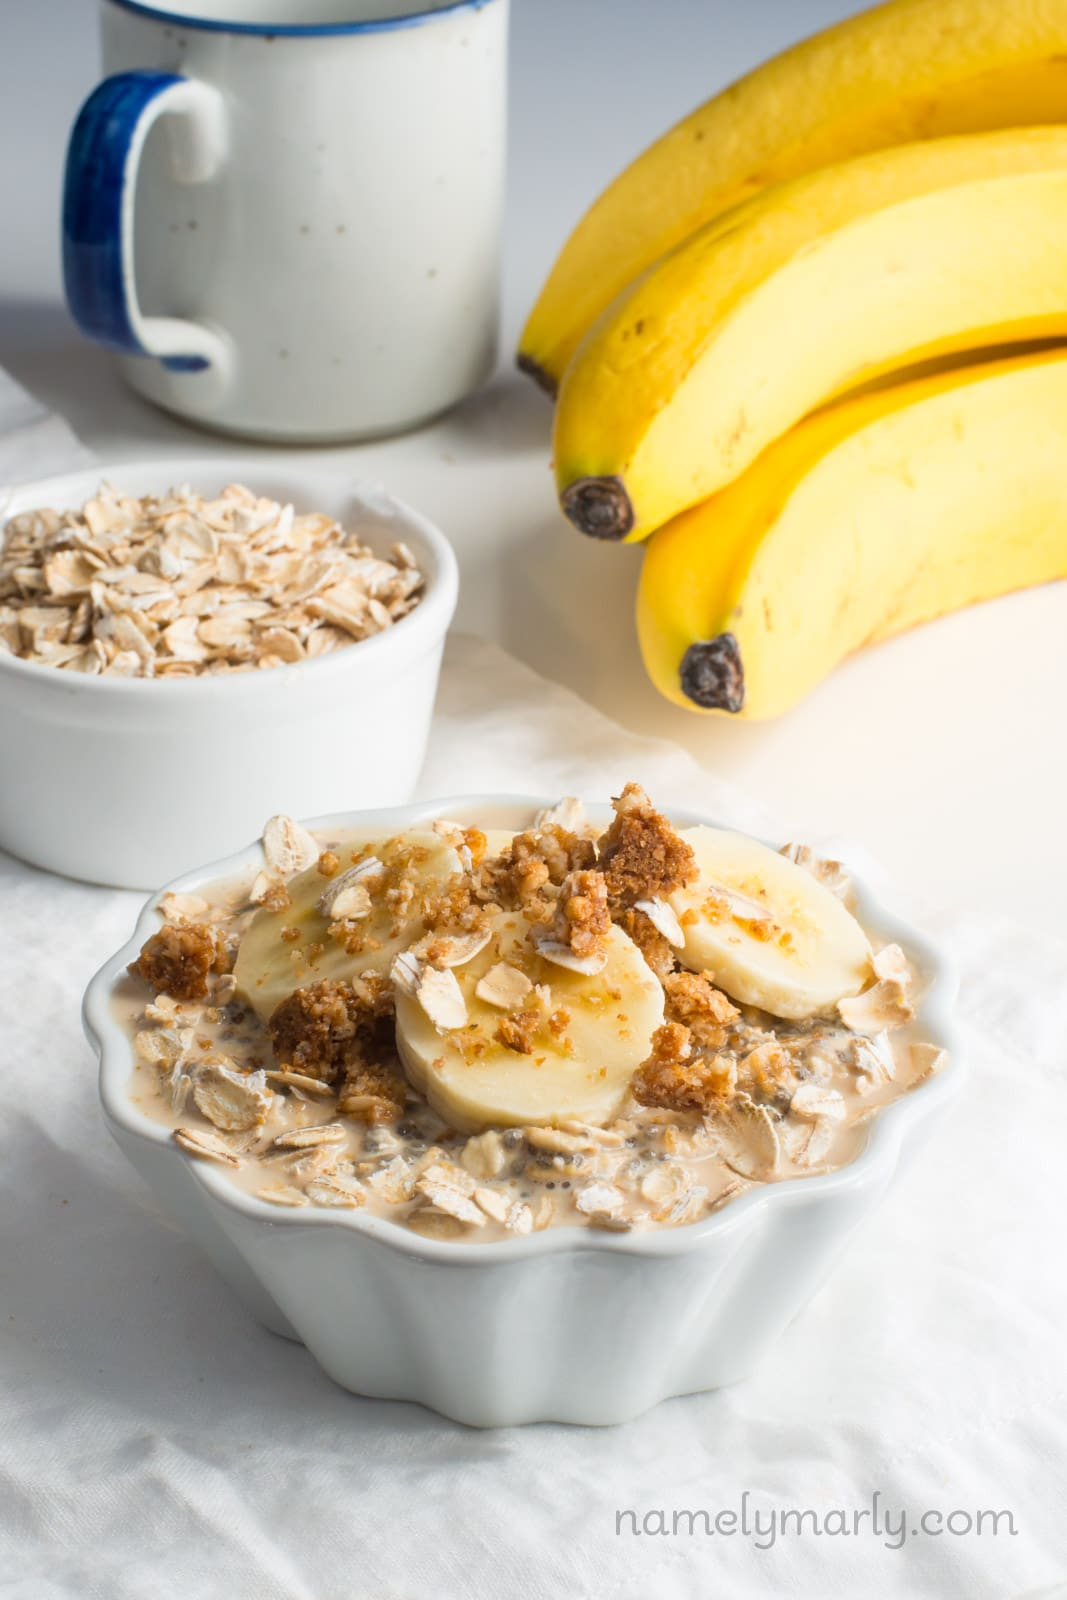 Get your day started out right with these Vegan Peanut Butter Overnight Oats. It's the perfect healthy breakfast for busy weekday mornings. Simply make them the night before and wake up to the best breakfast ever!